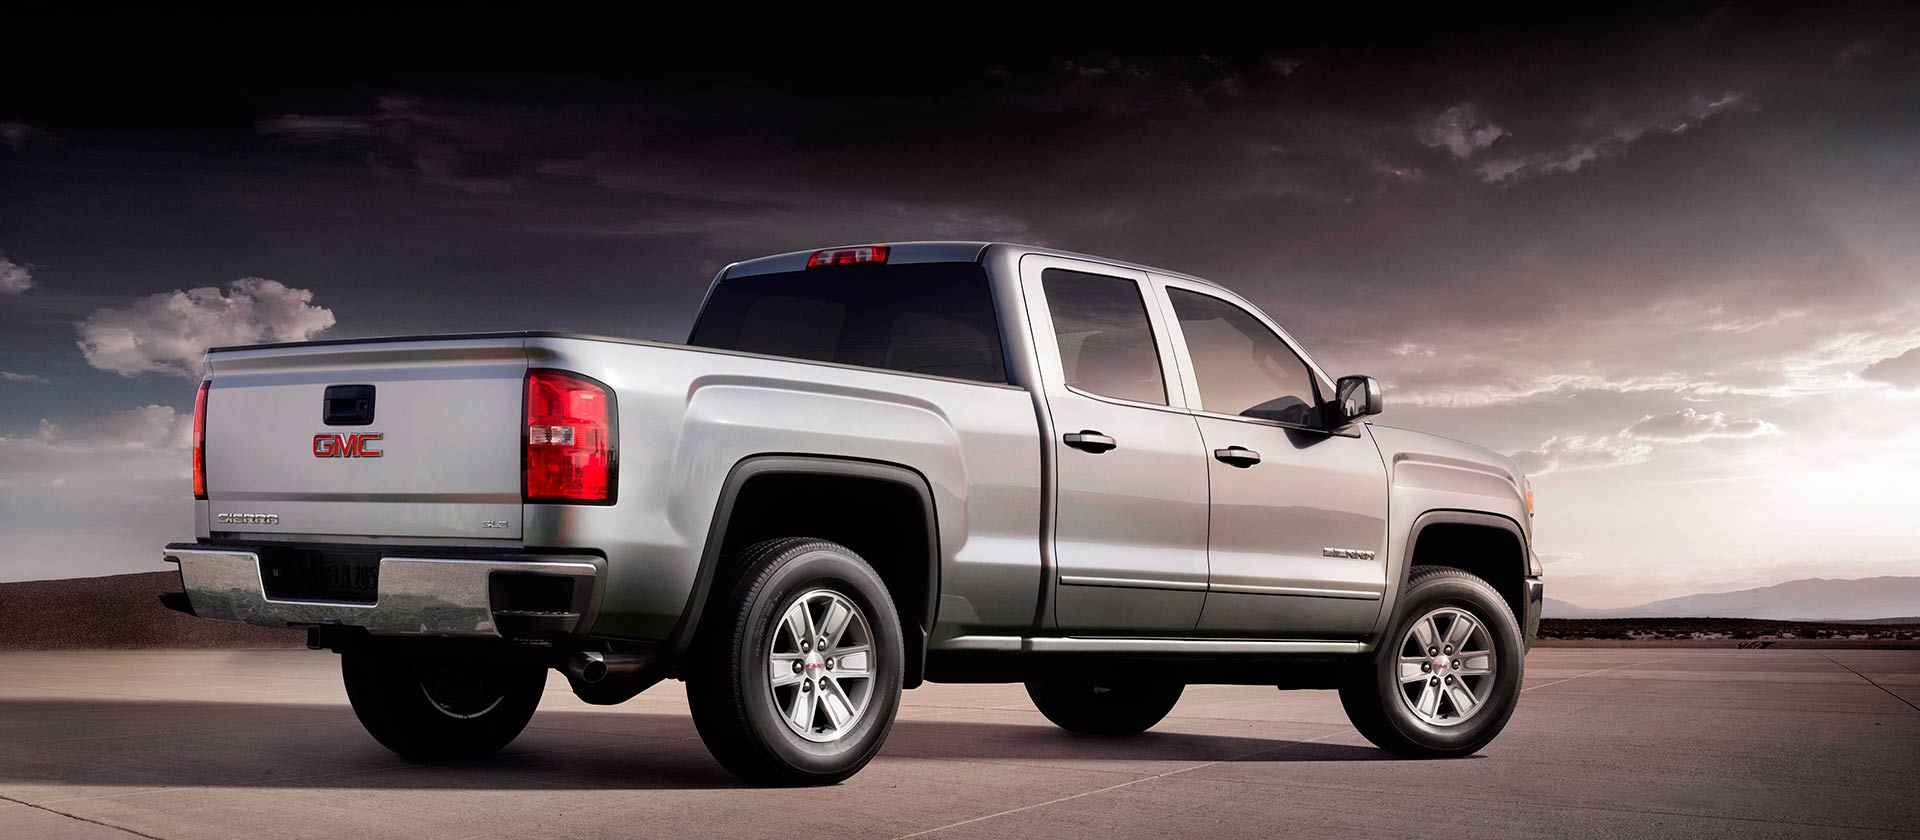 specials envision gaz ext gmc buick north bay select lease purchase